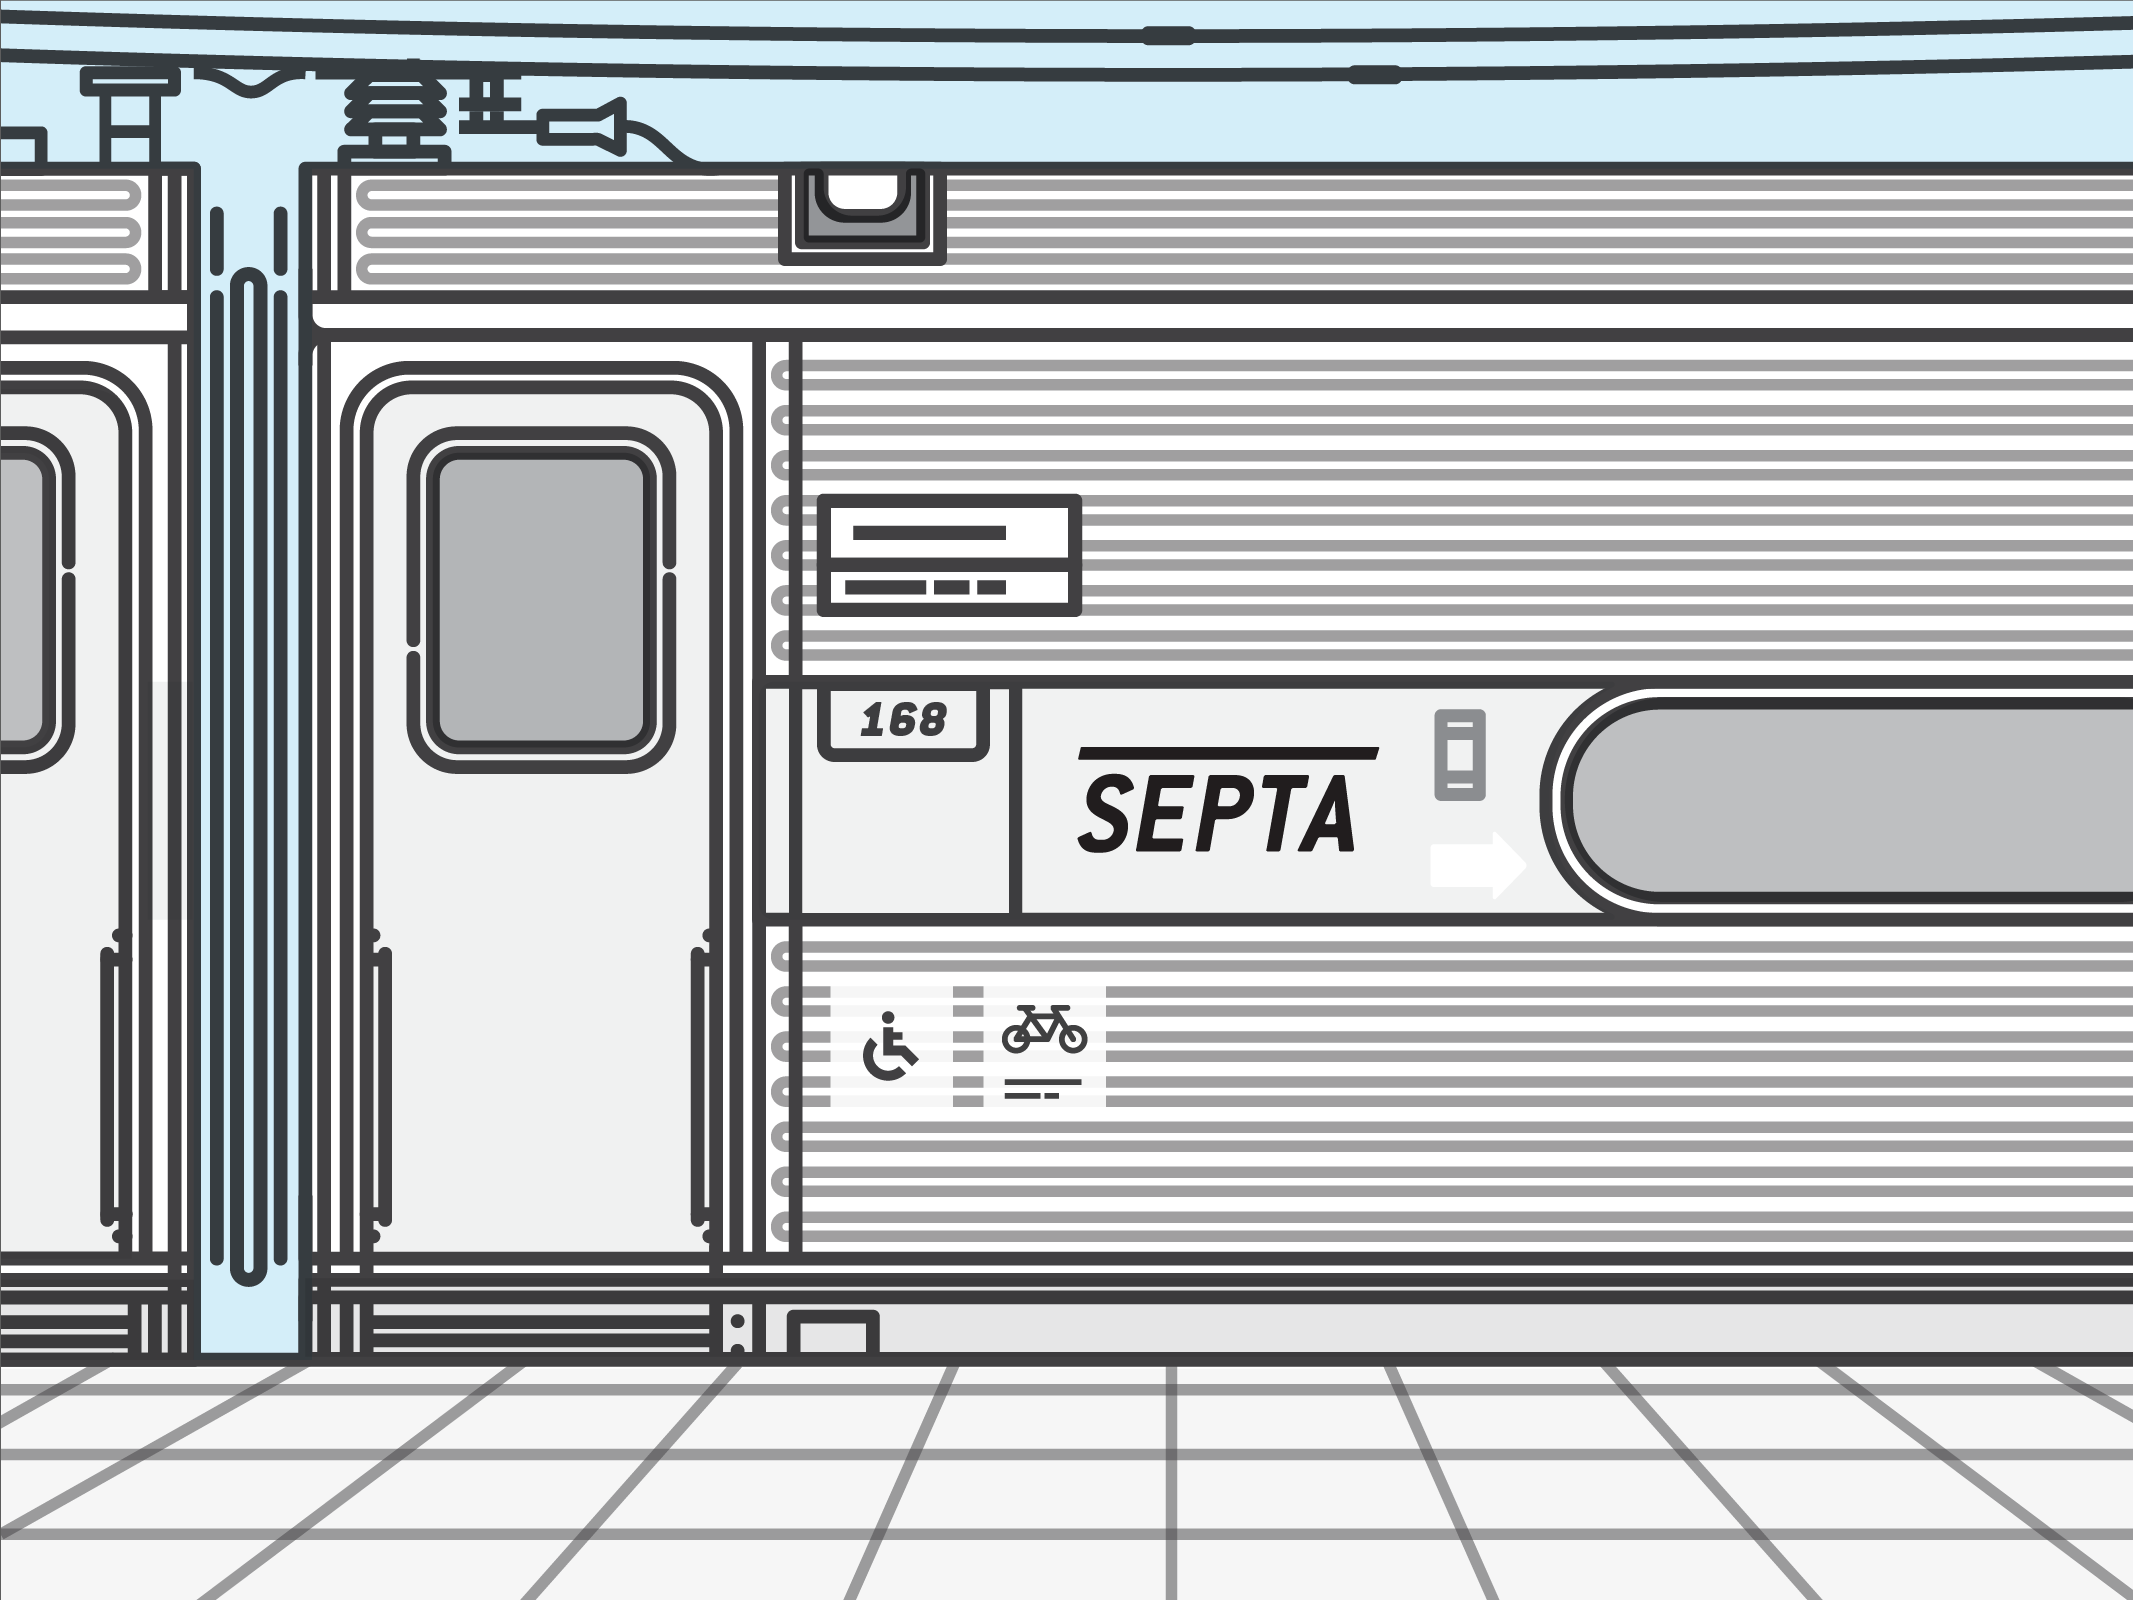 Redesigned SEPTA Logo placed on Train